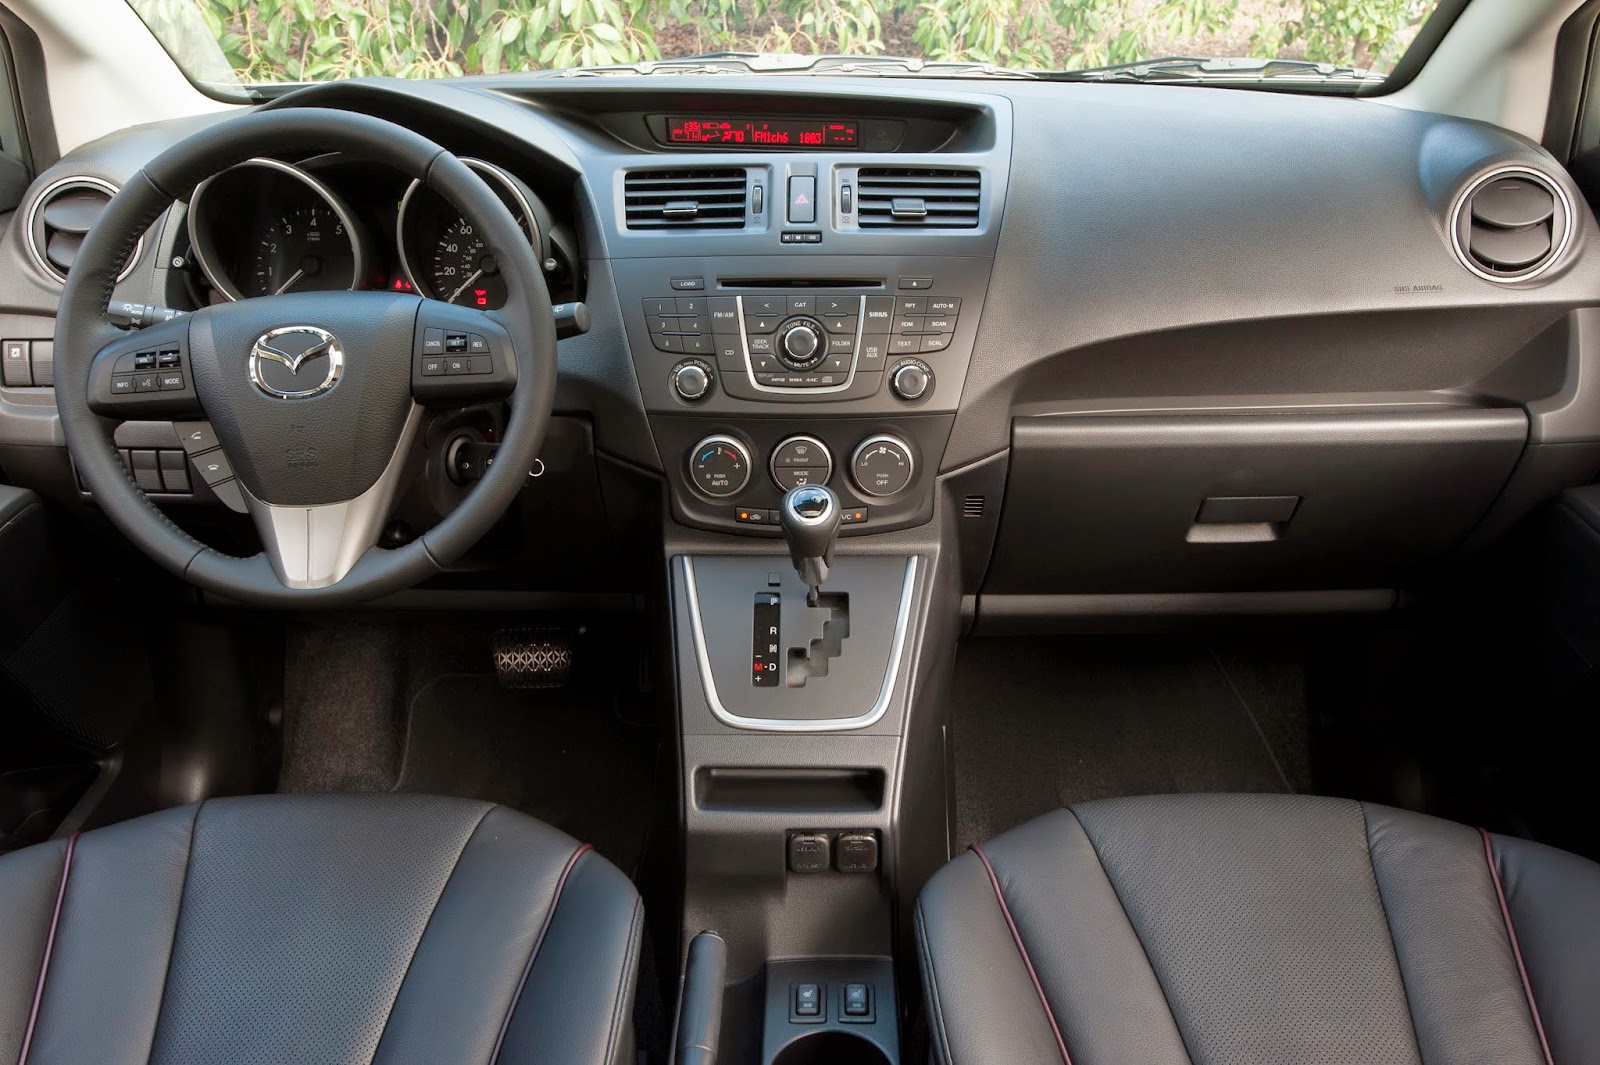 Interior view of 2015 Mazda 5.